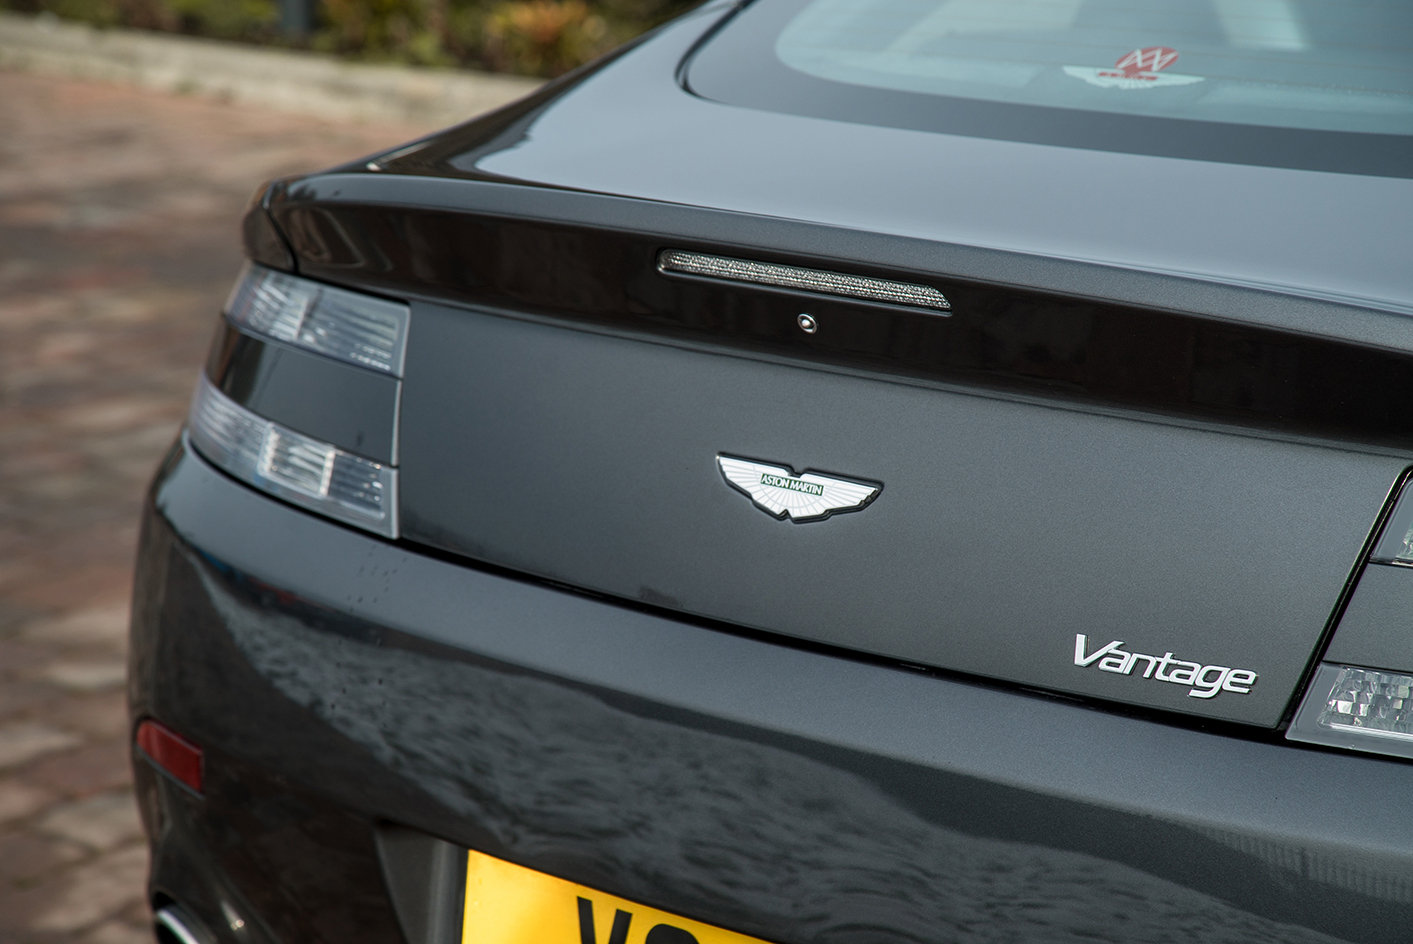 2011 Aston Martin Vantage 4.7 Sportshift Coupe For Sale (picture 5 of 6)